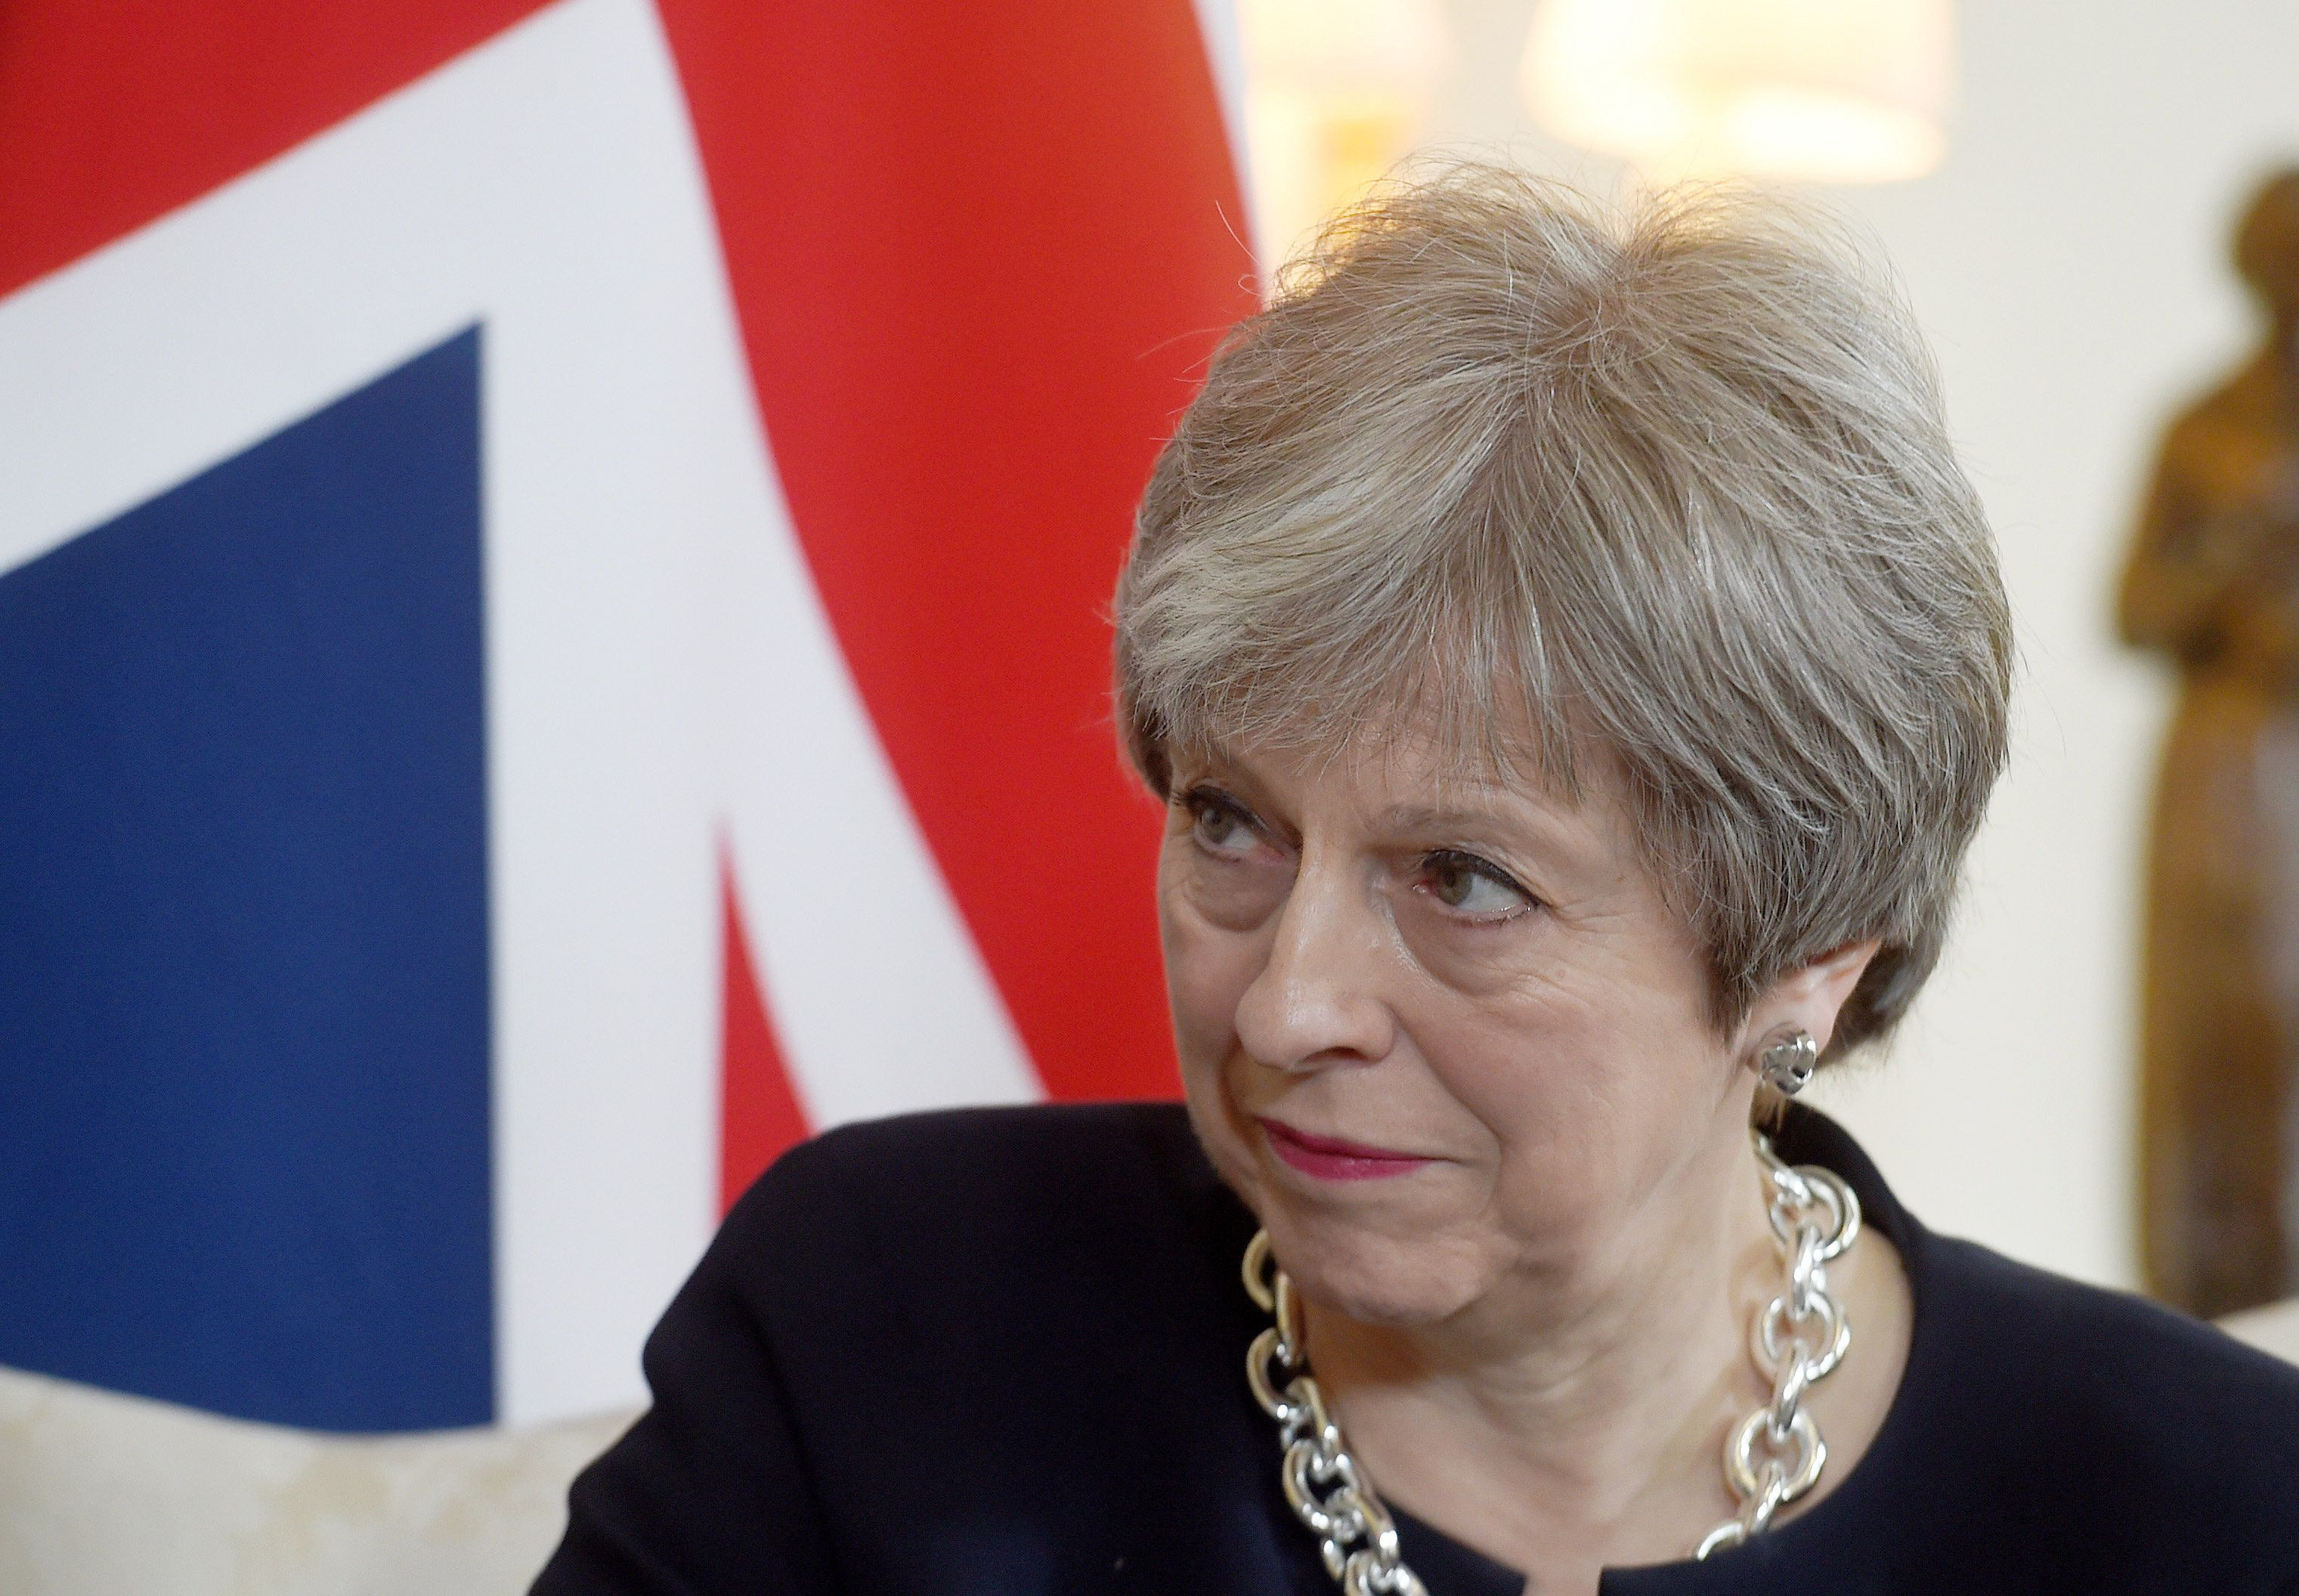 Theresa May Says Sorry To Caribbean Leaders Over Windrush Migrants